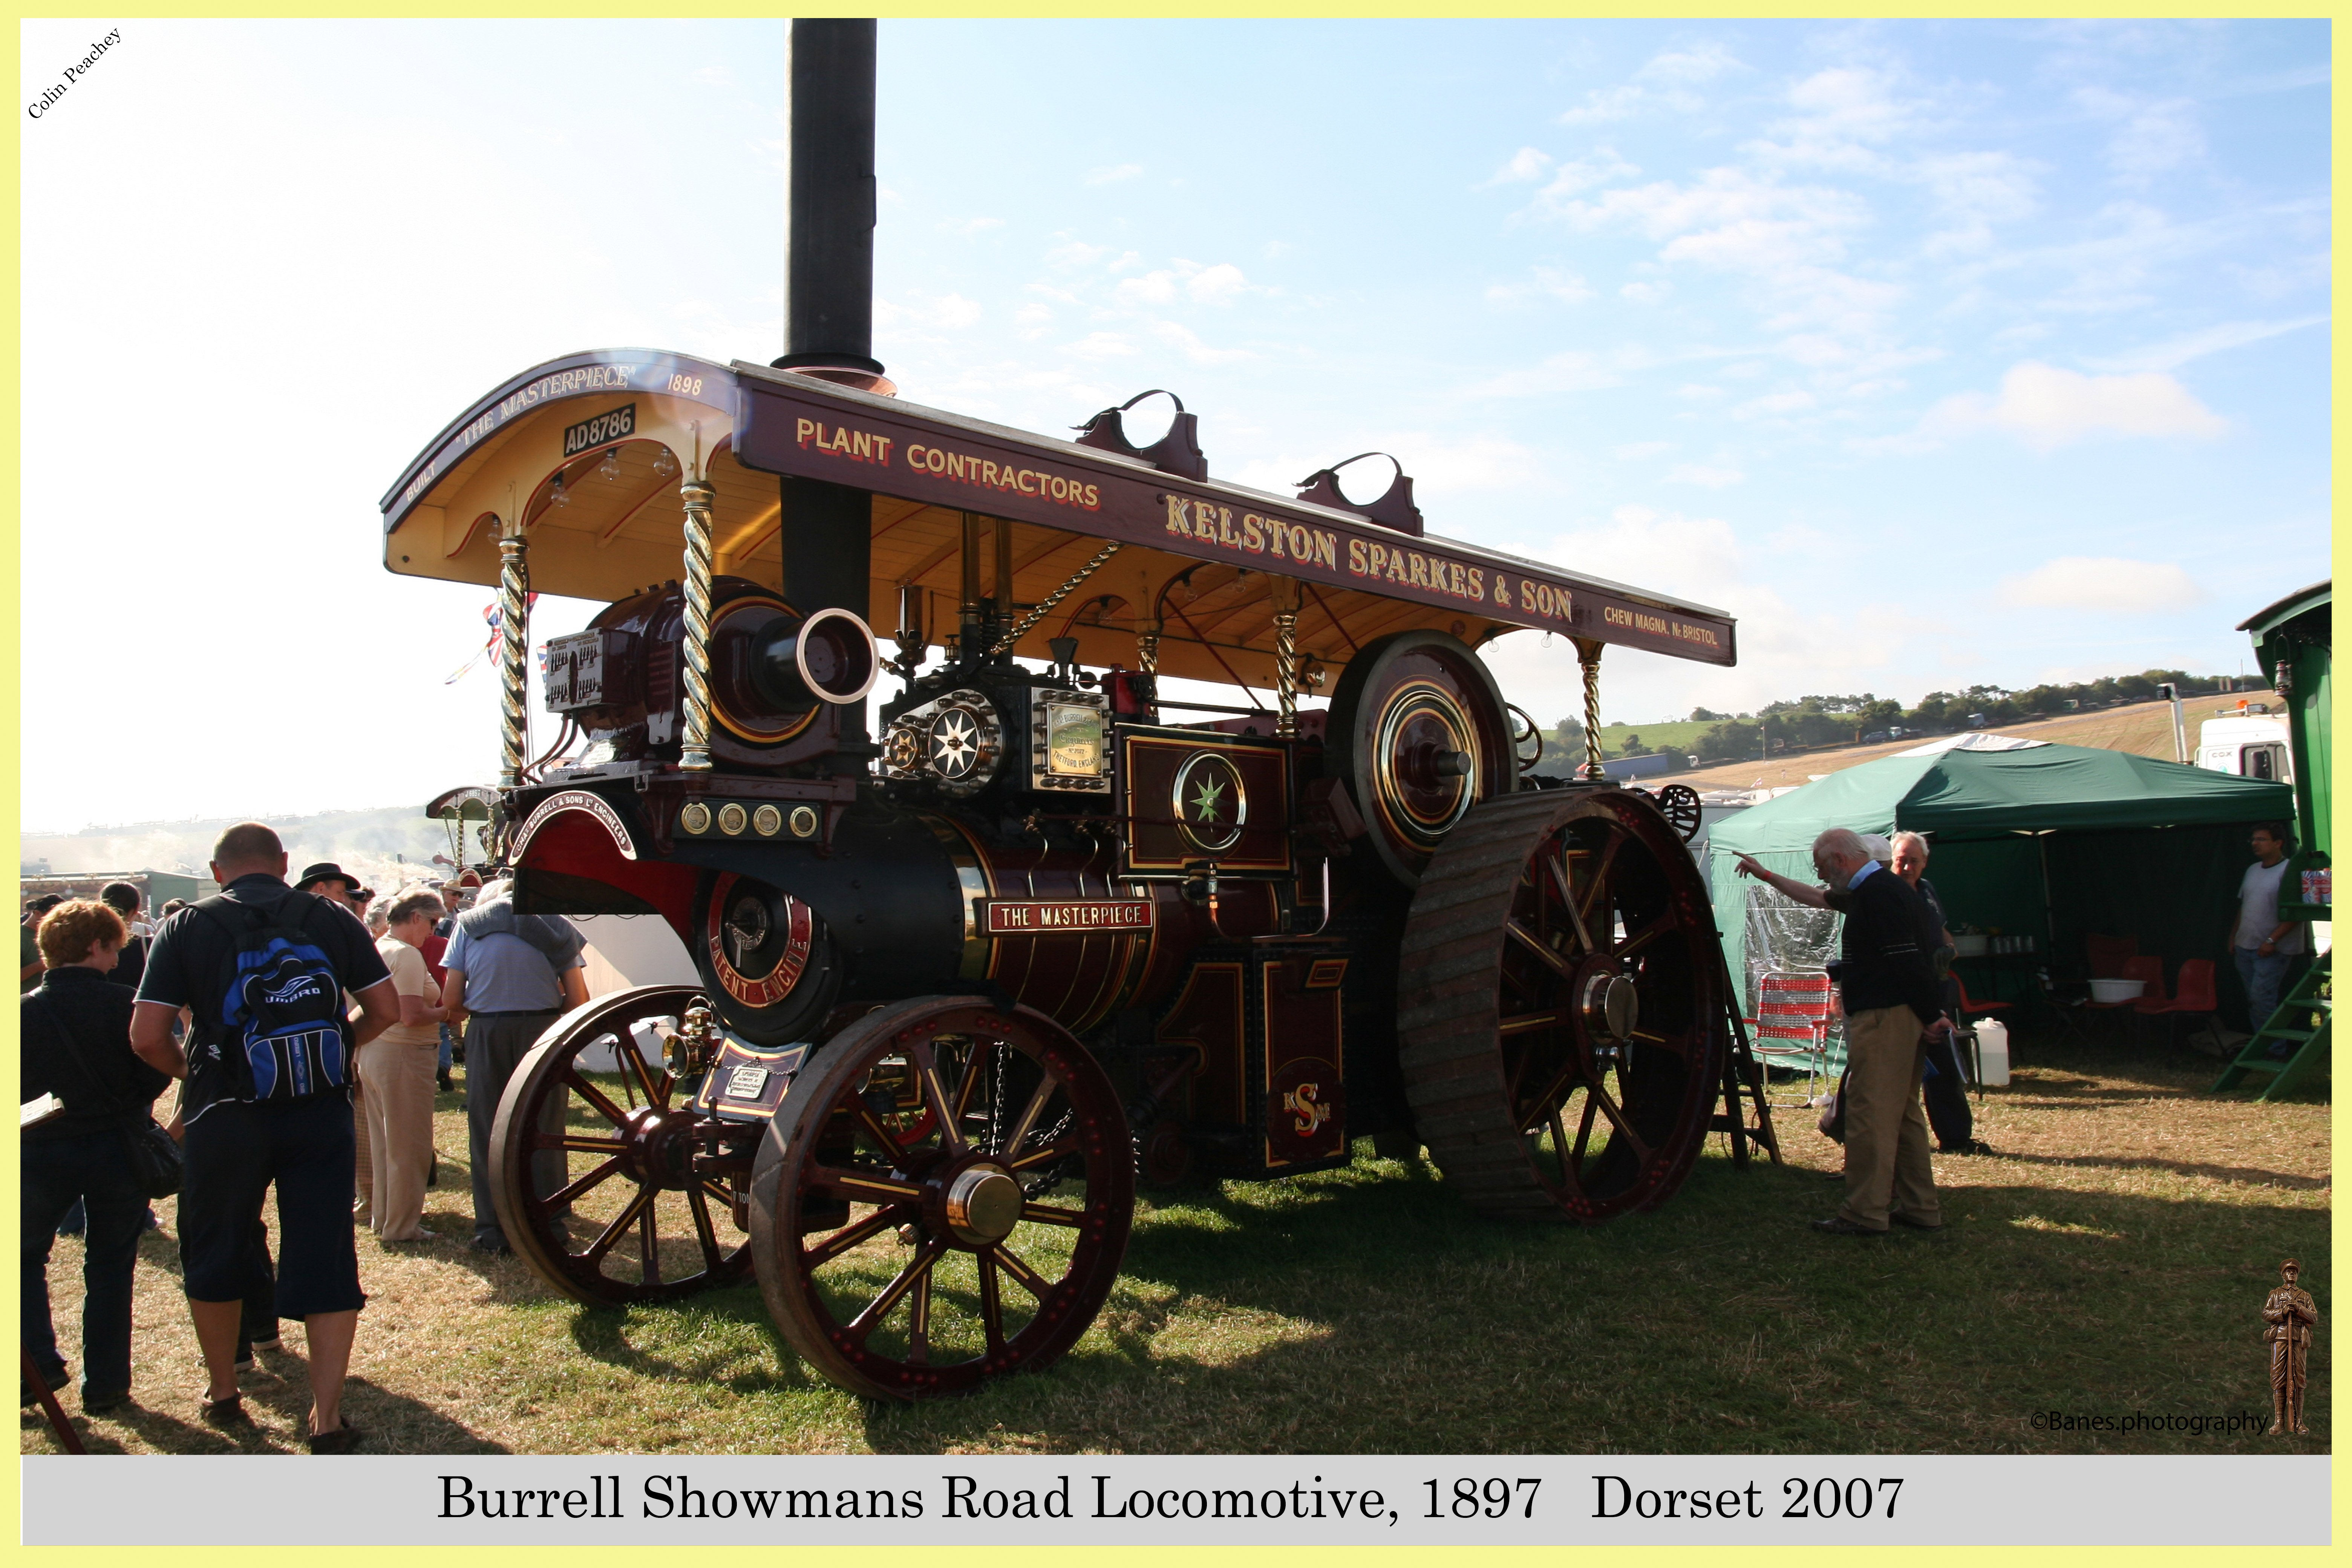 Burrell Showmans Road Locomotive, Reg No. AD 8786, 1897